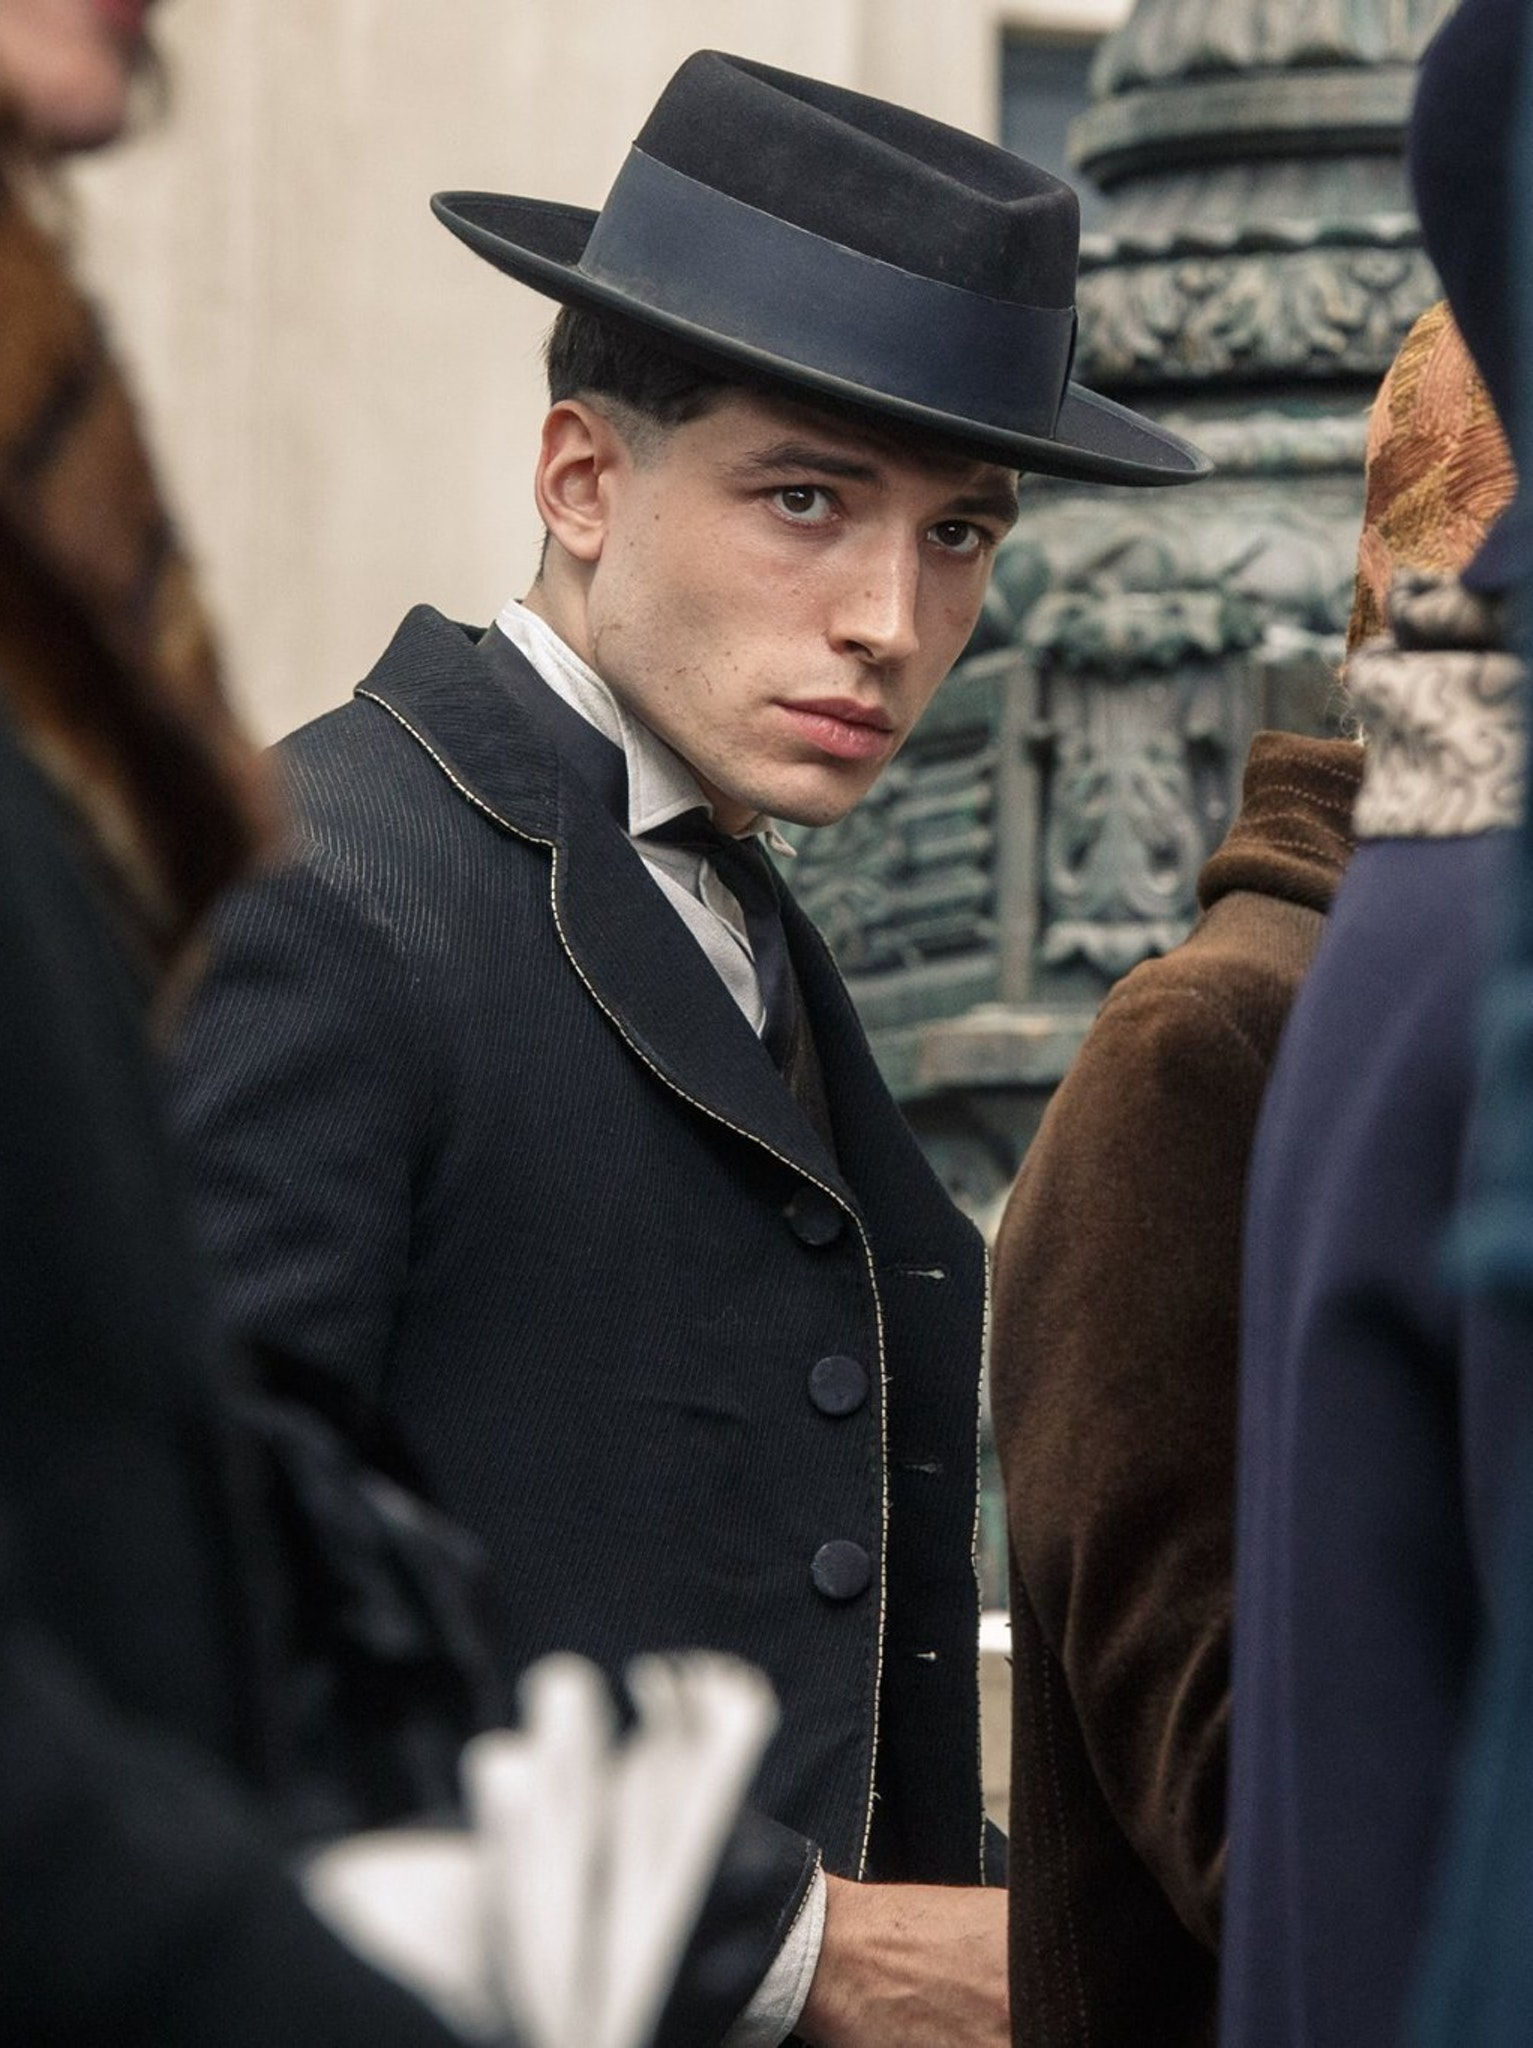 Credence Barebone  in 'Fantastic Beasts and Where to Find Them'